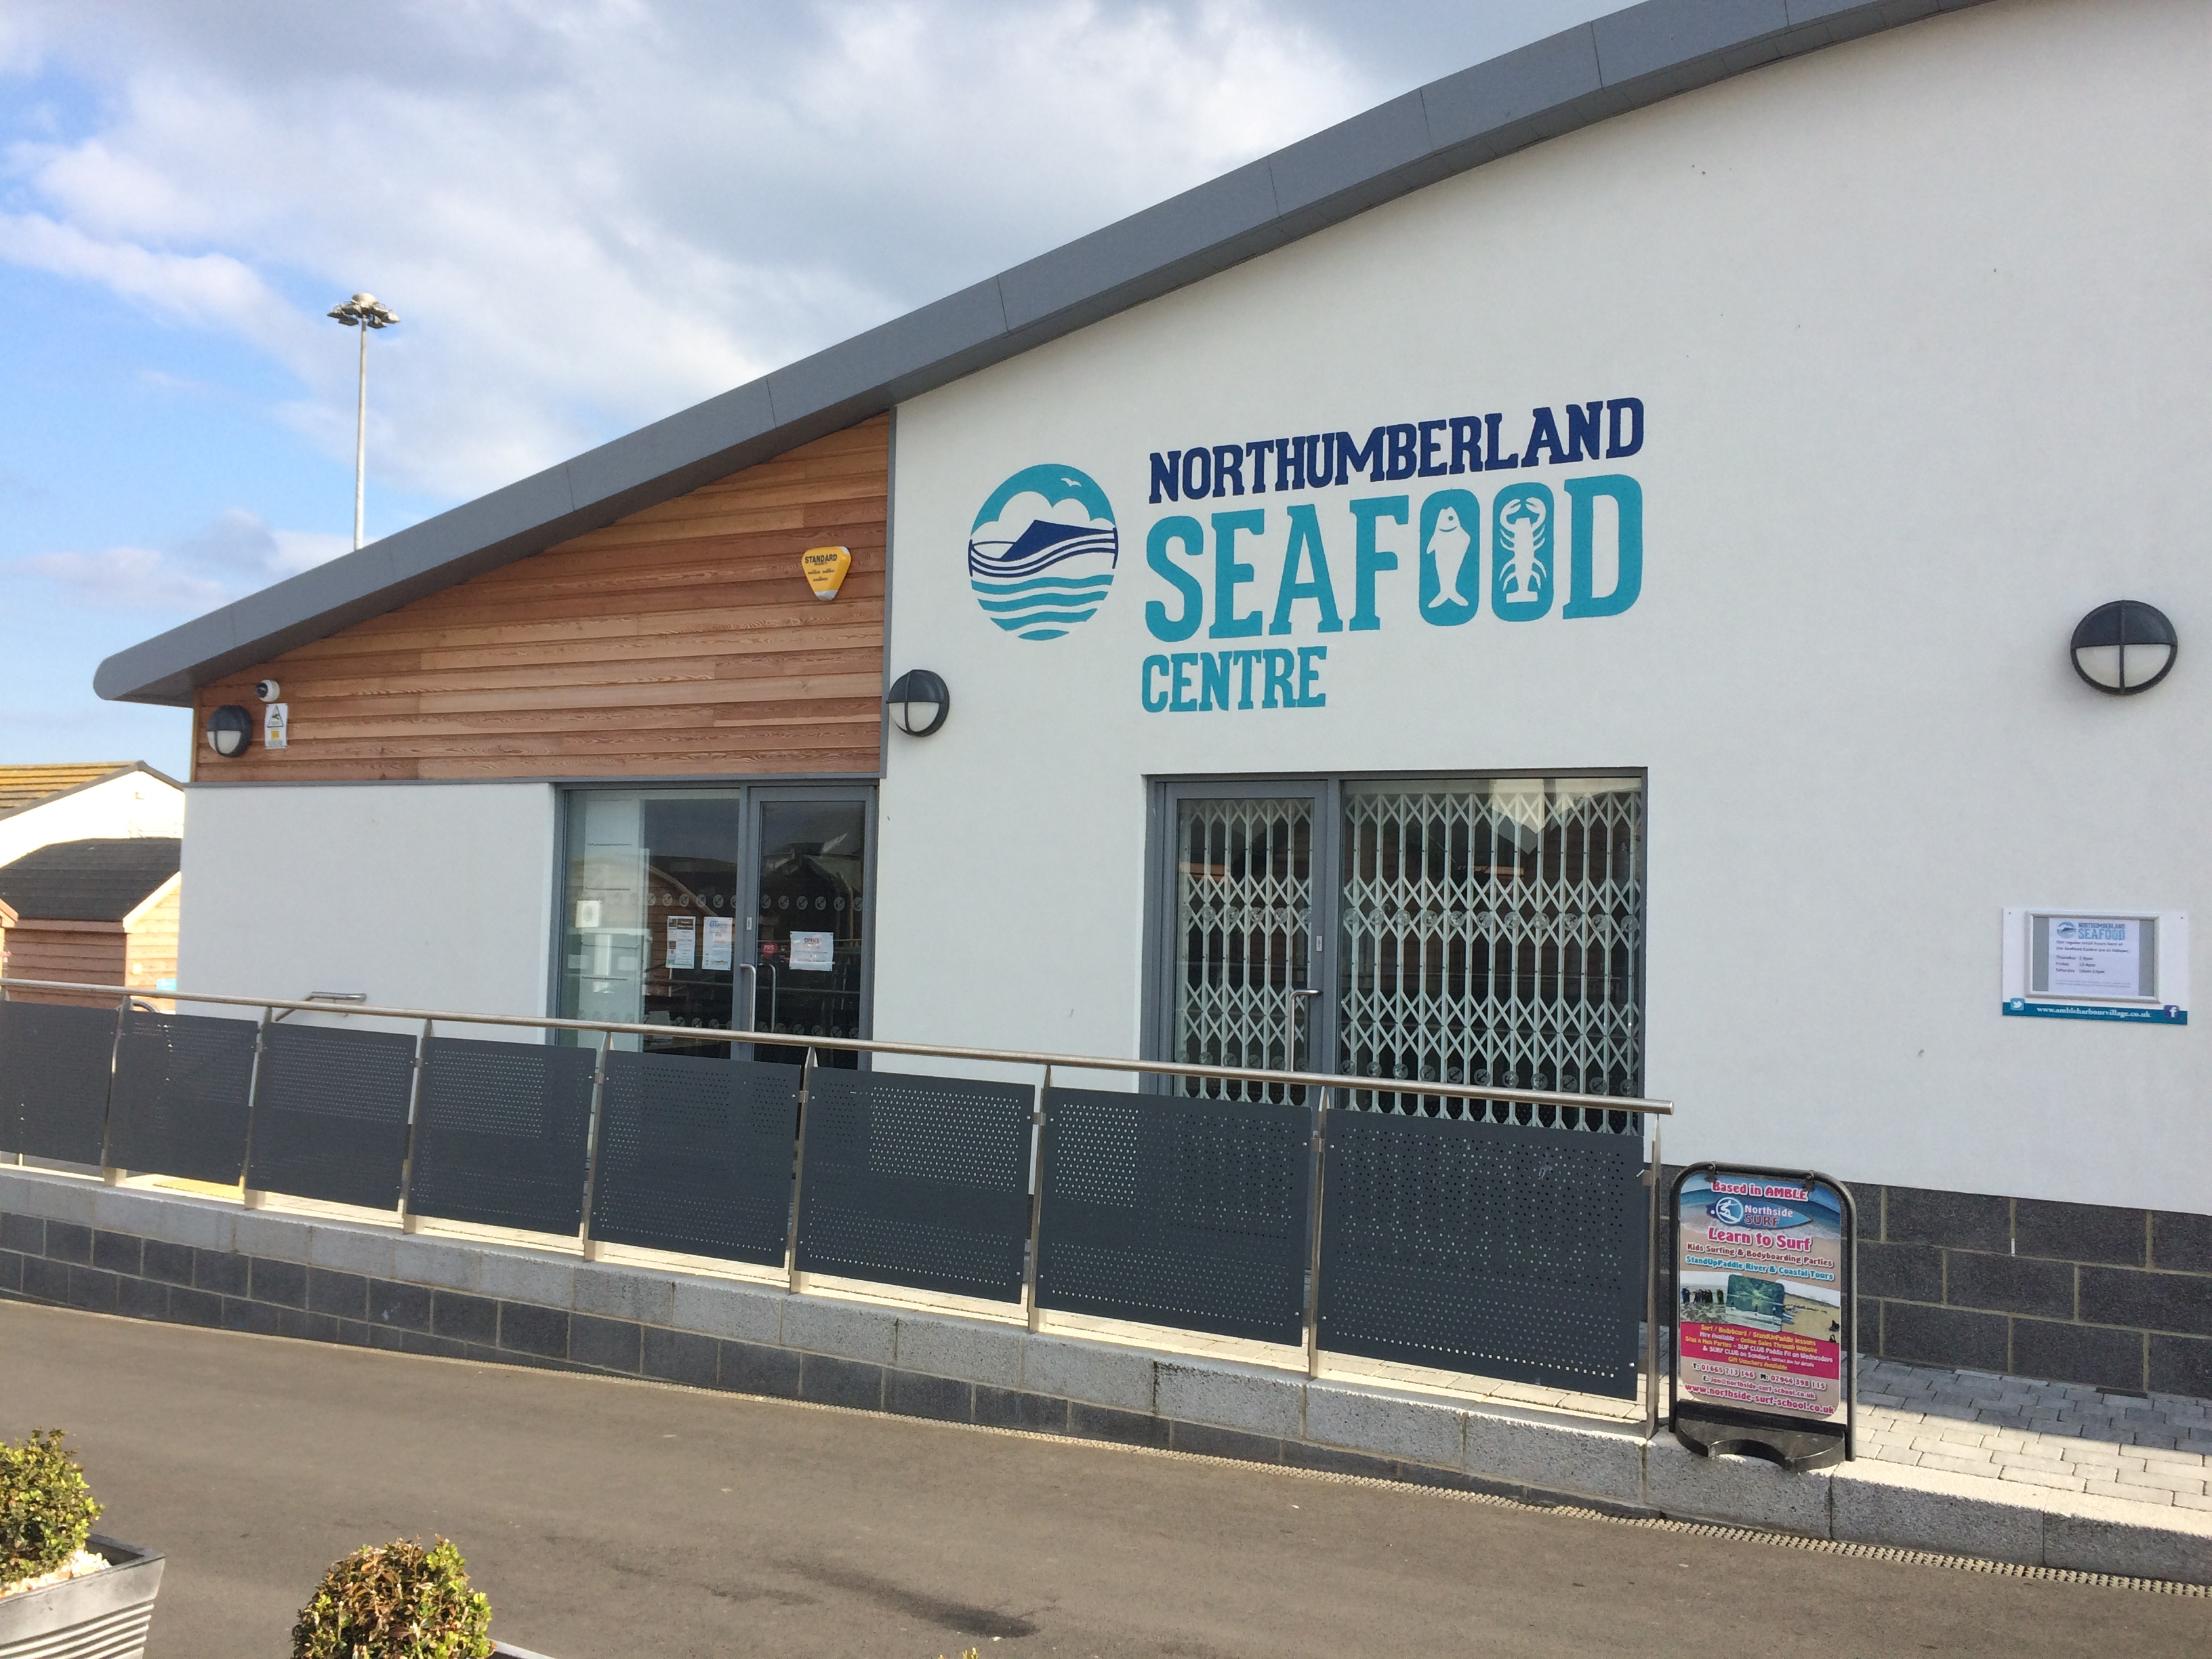 Nland Seafood Centre